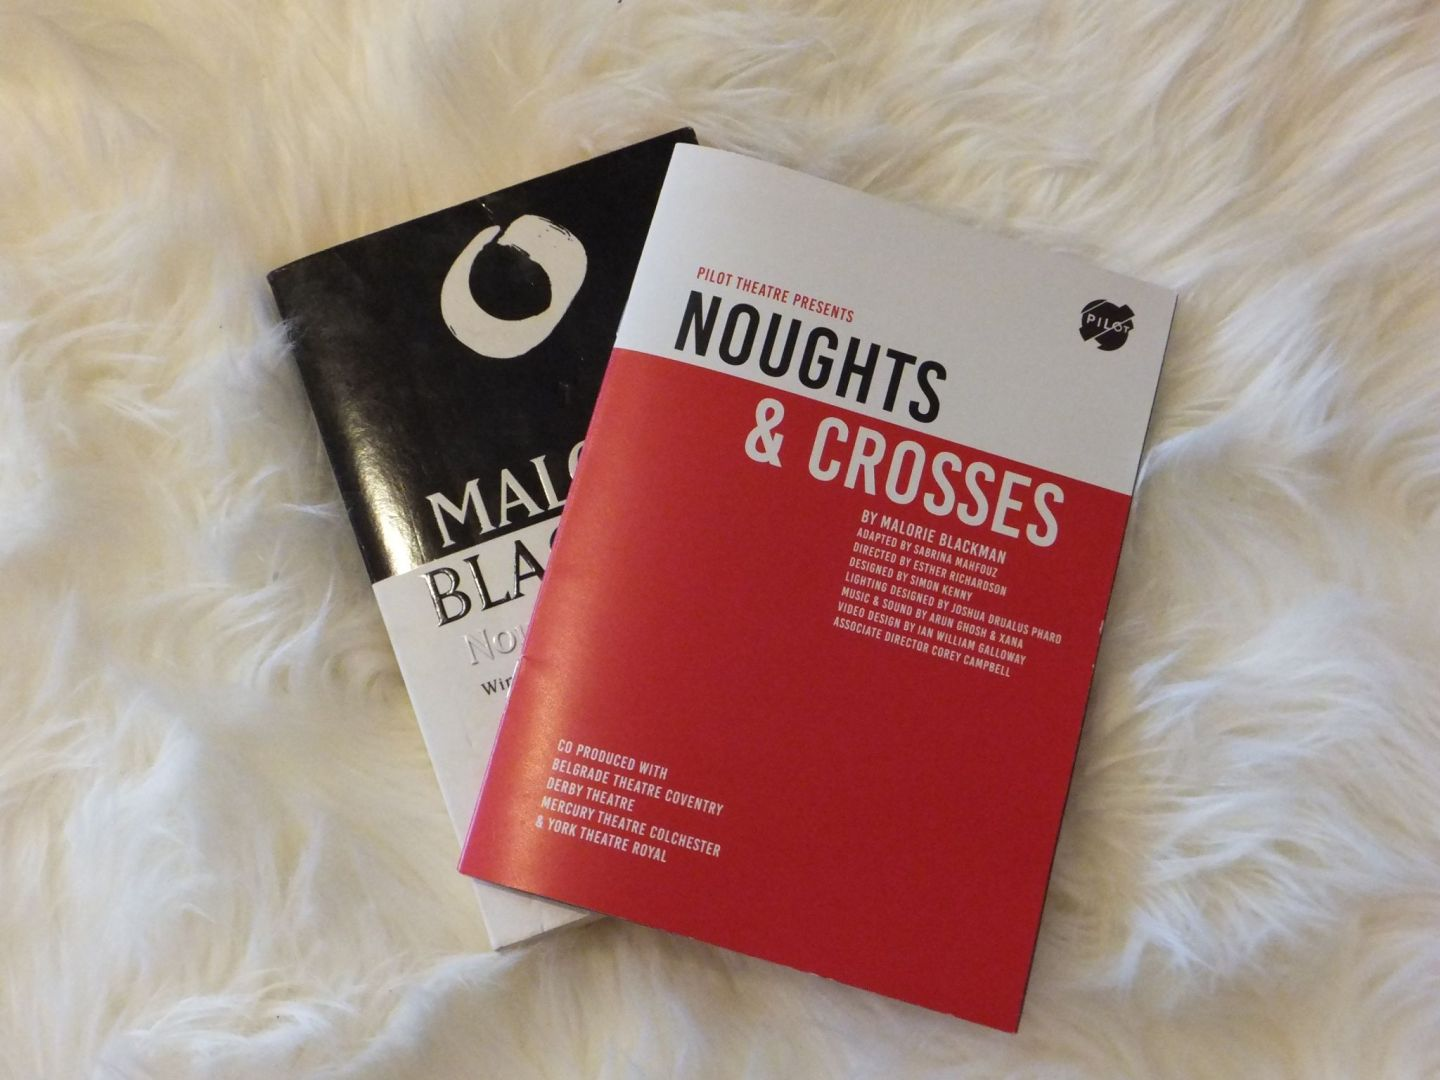 Programme for Noughts & Crosses